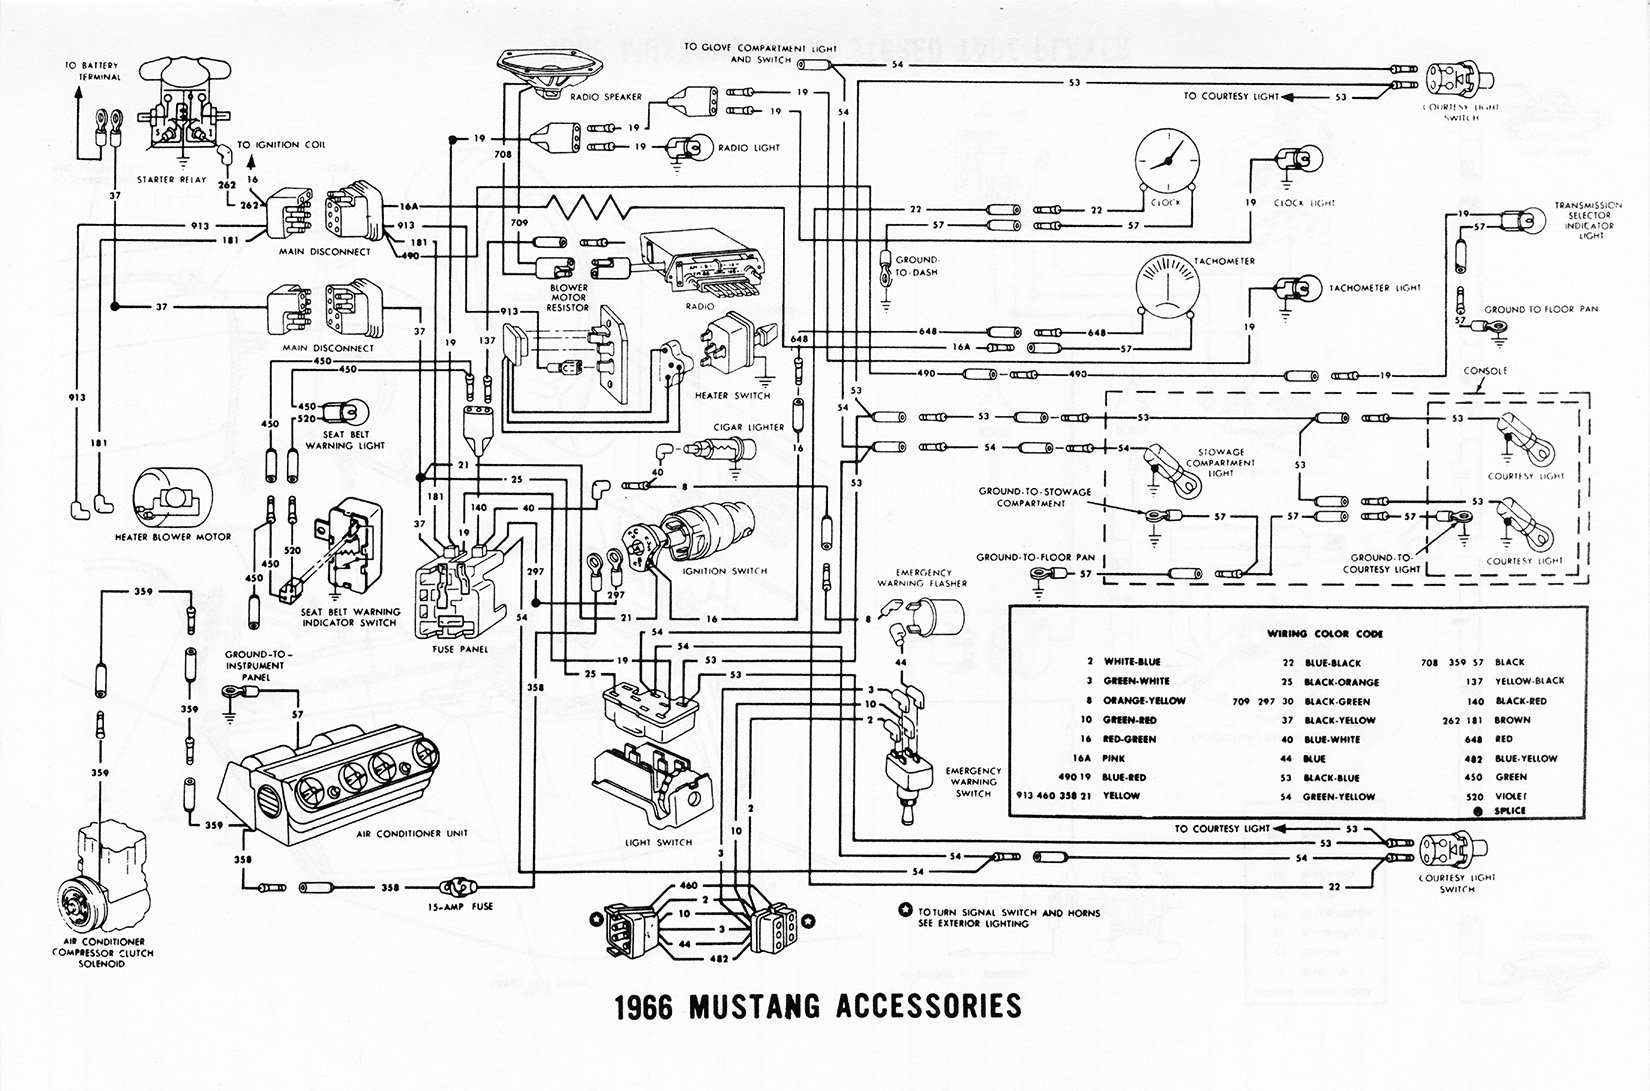 Aftermarket Tach Wiring Diagram For 1966 Ford Mustang - Wiring Data